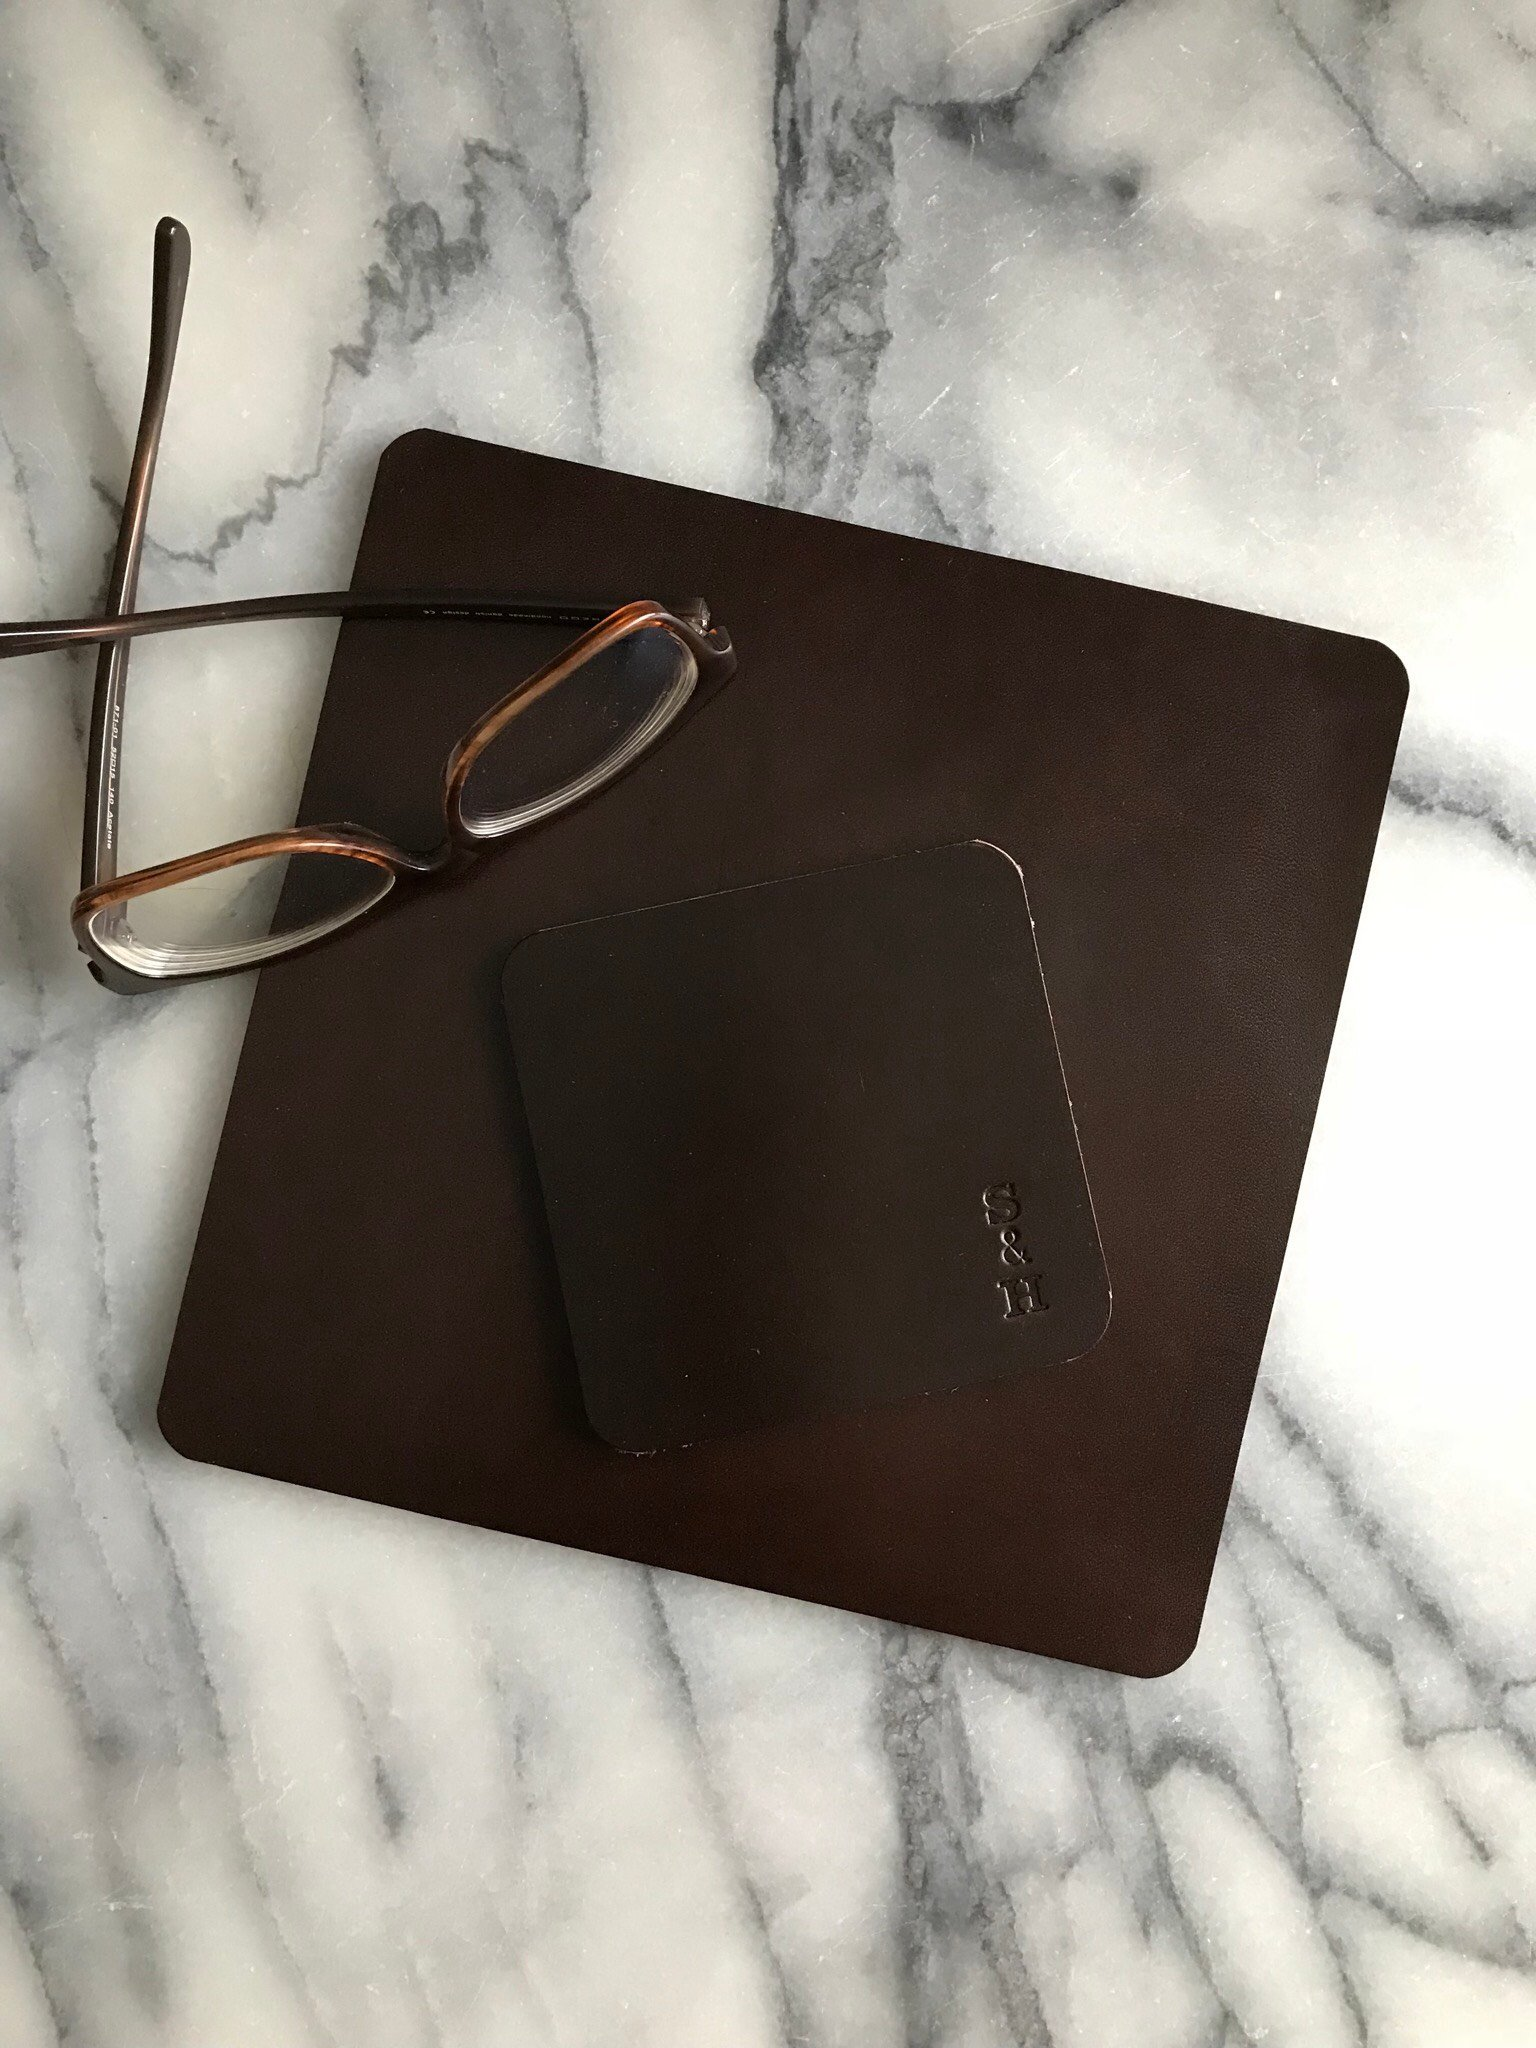 Leather Mouse Pad Brown - Musmatta i läder